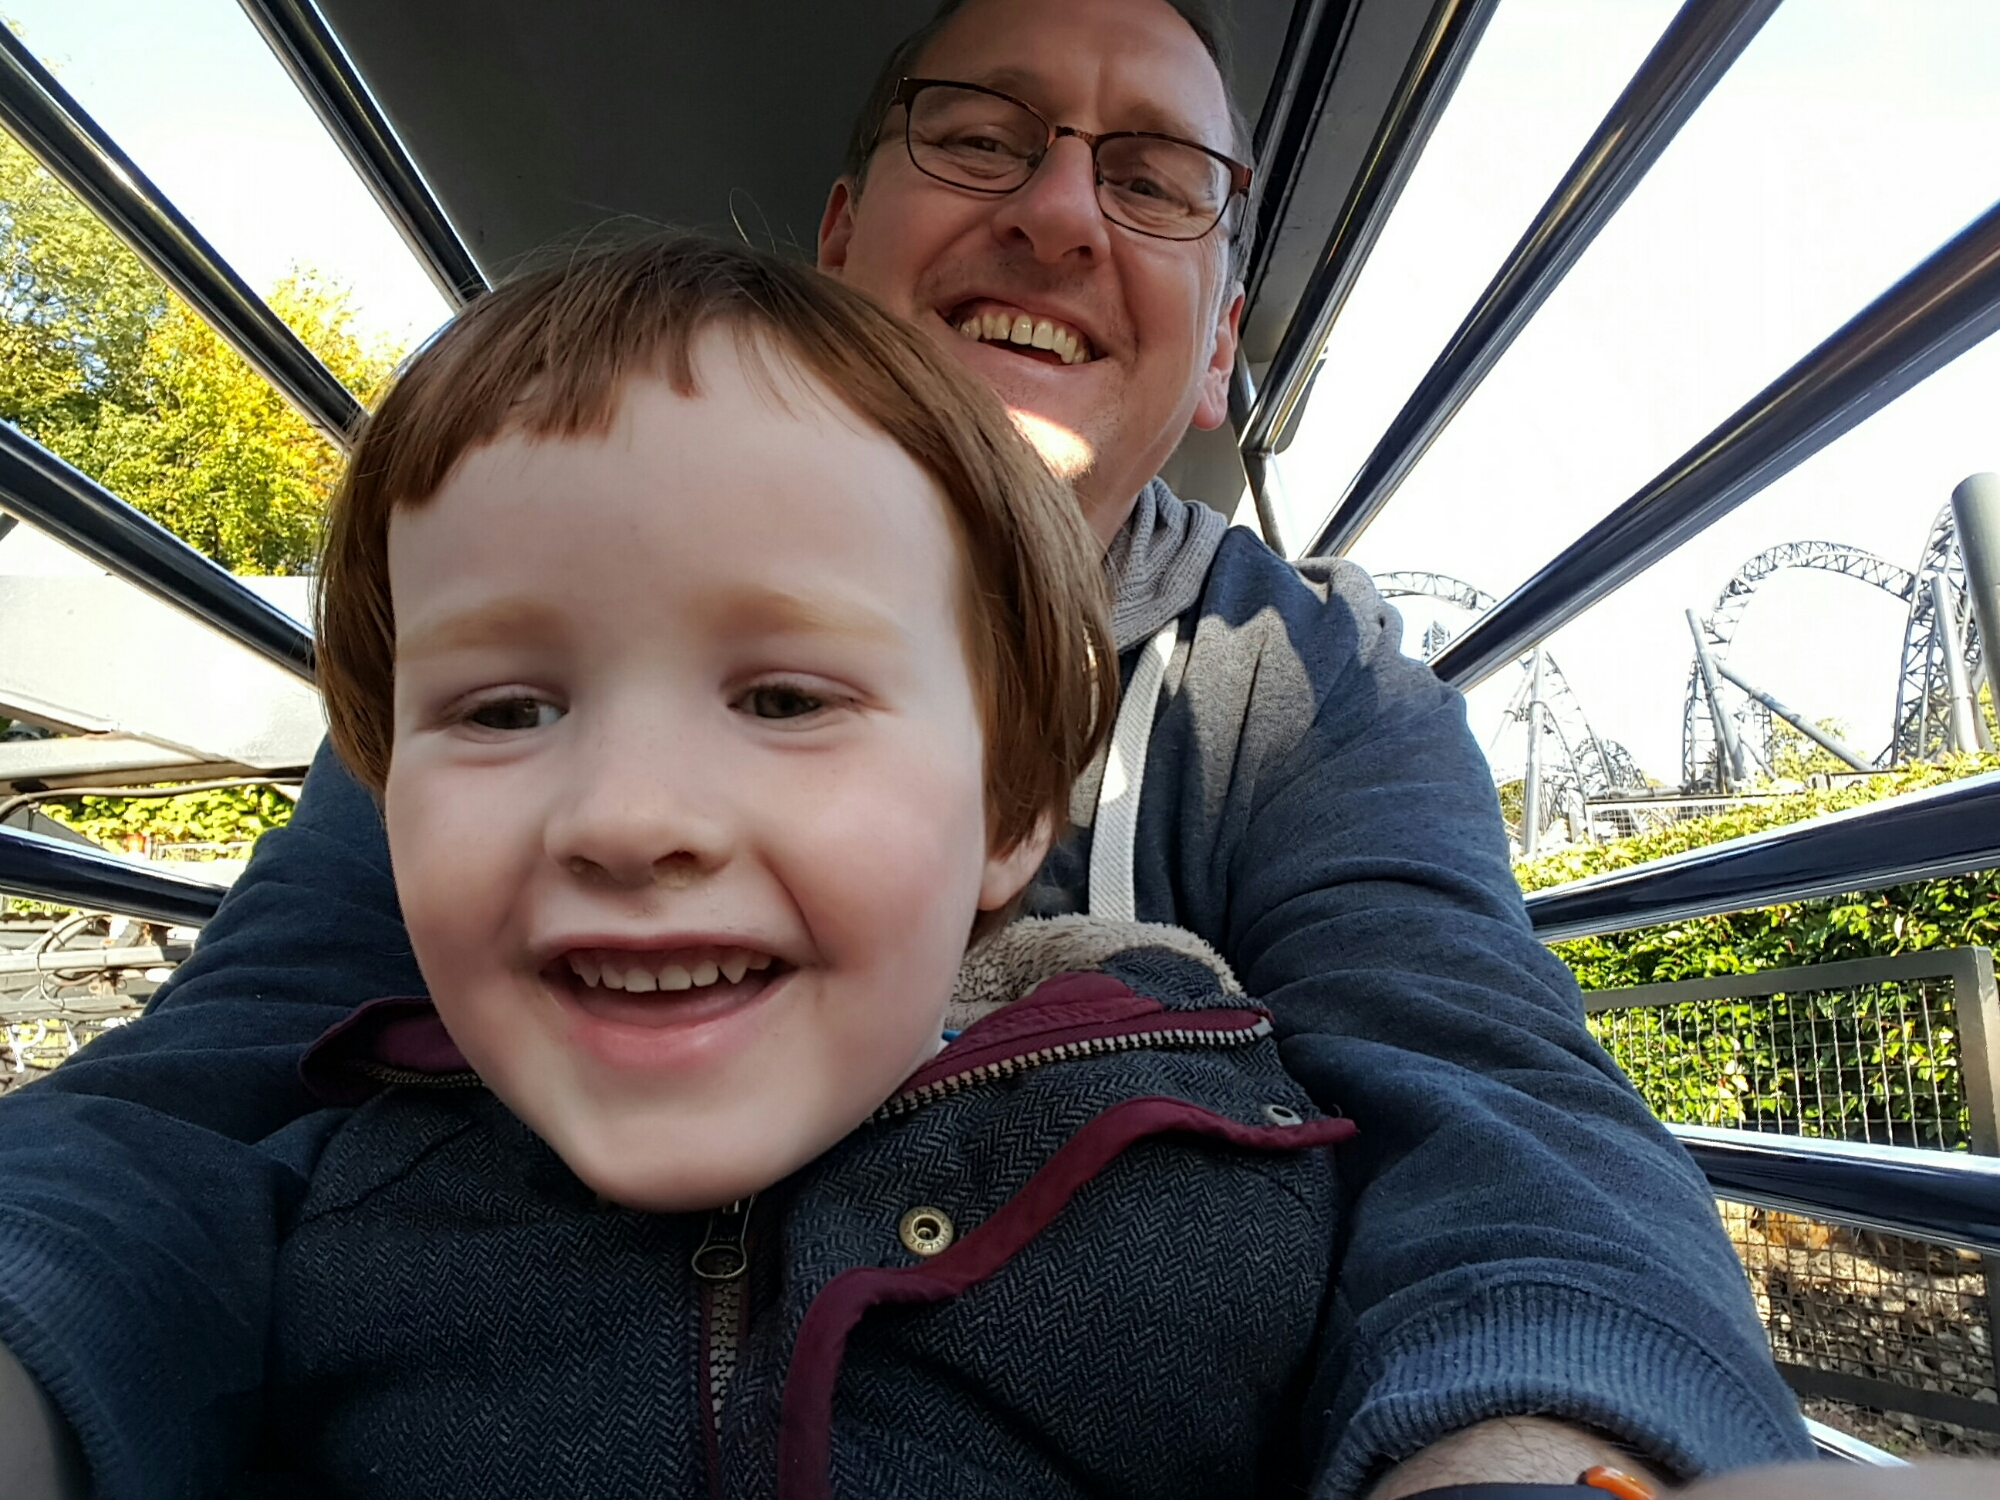 On a Ride with Daddy